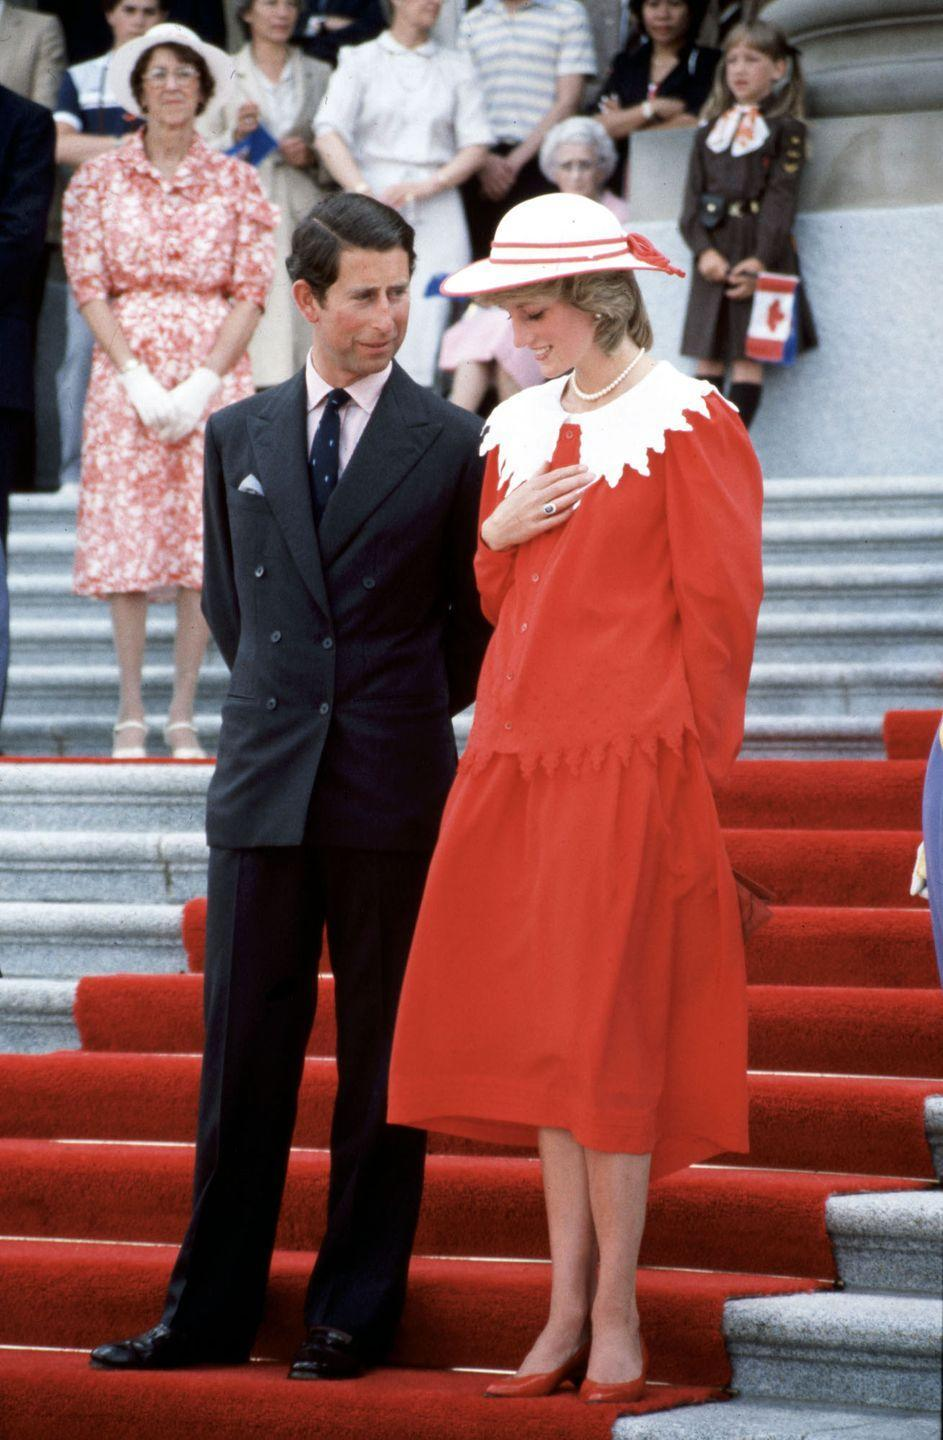 """<p><strong>When did they meet?</strong> 1977</p><p><strong>How did they meet? </strong>Being a member of aristocracy herself, <a href=""""https://www.cosmopolitan.com/uk/fashion/celebrity/g35161868/princess-diana-fashion-before-royal/"""" rel=""""nofollow noopener"""" target=""""_blank"""" data-ylk=""""slk:Diana grew up"""" class=""""link rapid-noclick-resp"""">Diana grew up</a> around the Royal Family and often played with Prince Edward when they were both children. But, it wasn't until 1977 that <a href=""""https://www.cosmopolitan.com/uk/reports/a34695721/prince-charles-princess-diana-wedding-note/"""" rel=""""nofollow noopener"""" target=""""_blank"""" data-ylk=""""slk:she met Prince Charles"""" class=""""link rapid-noclick-resp"""">she met Prince Charles</a>, who was dating her elder sister, Sarah, at the time. </p><p>Two years later, the pair reconnected when they were both single and got engaged after just six months.</p>"""